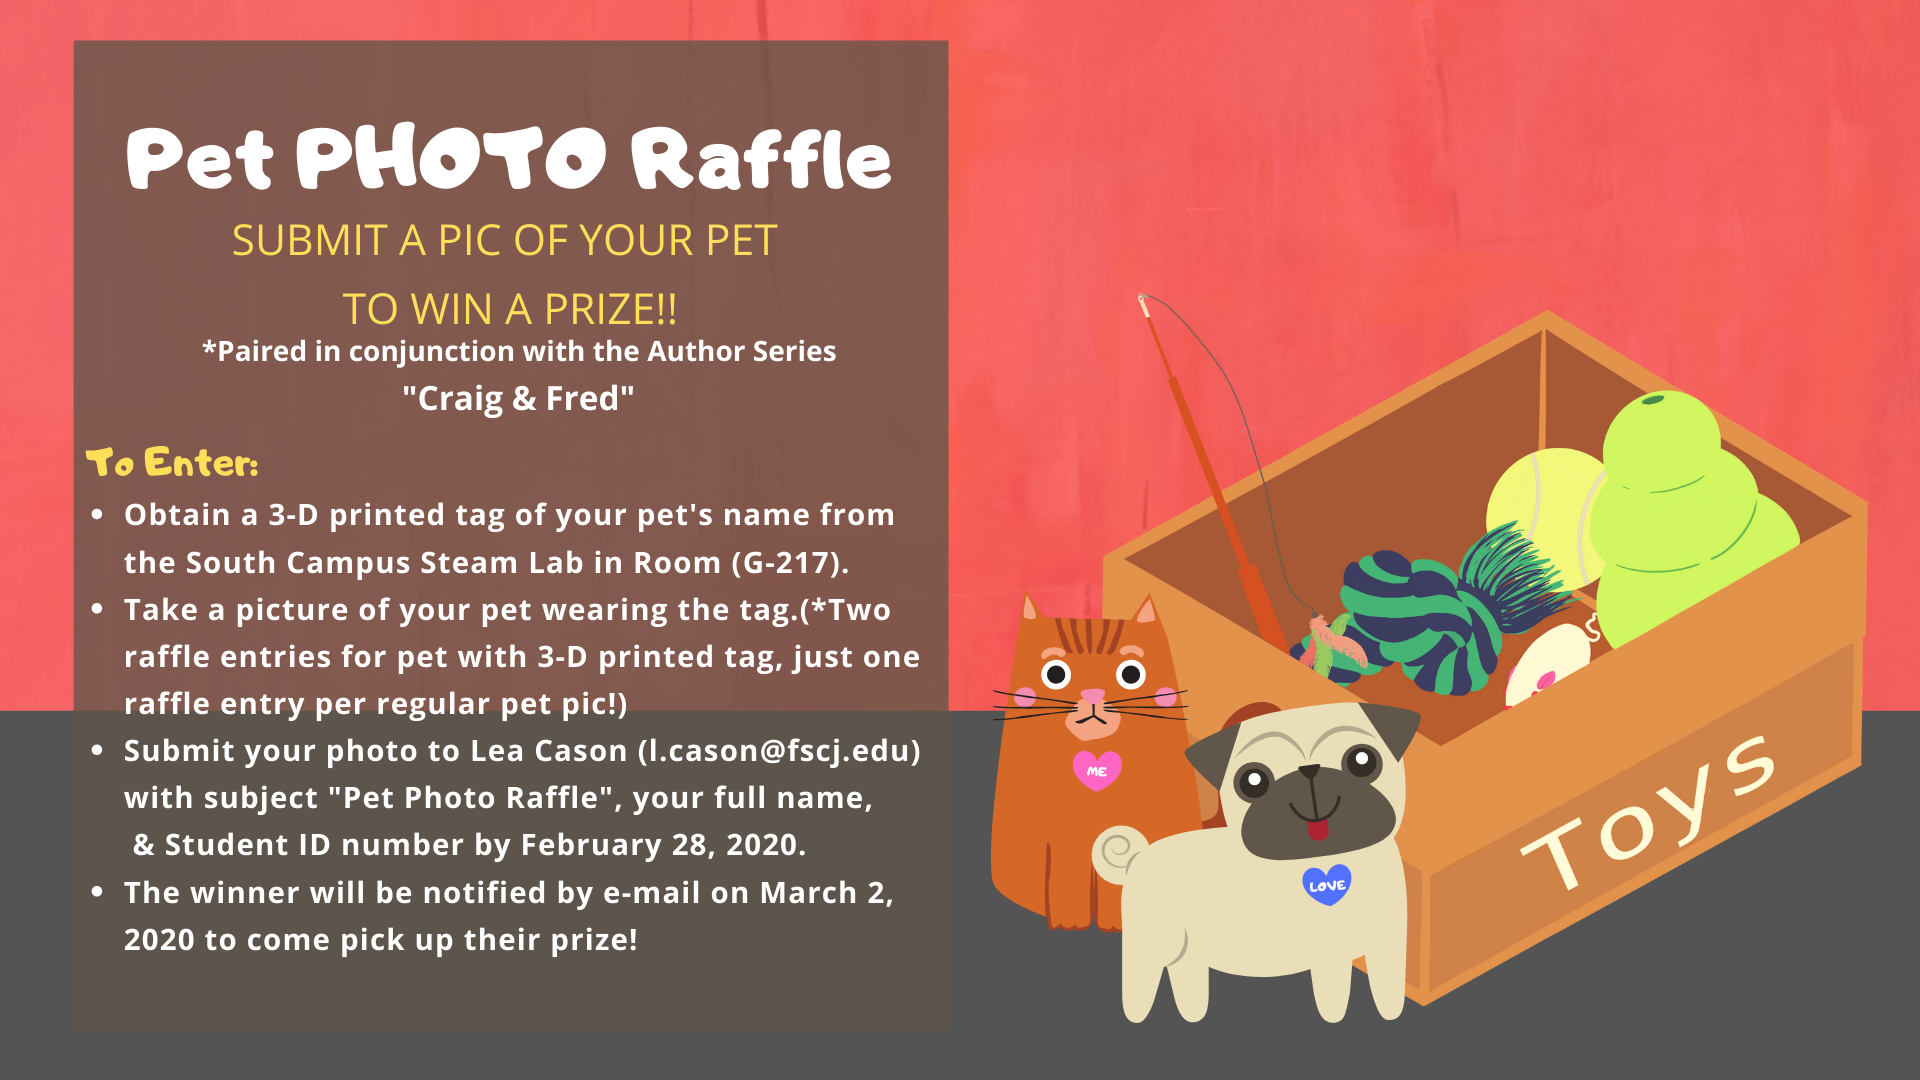 Pet Photo Raffle